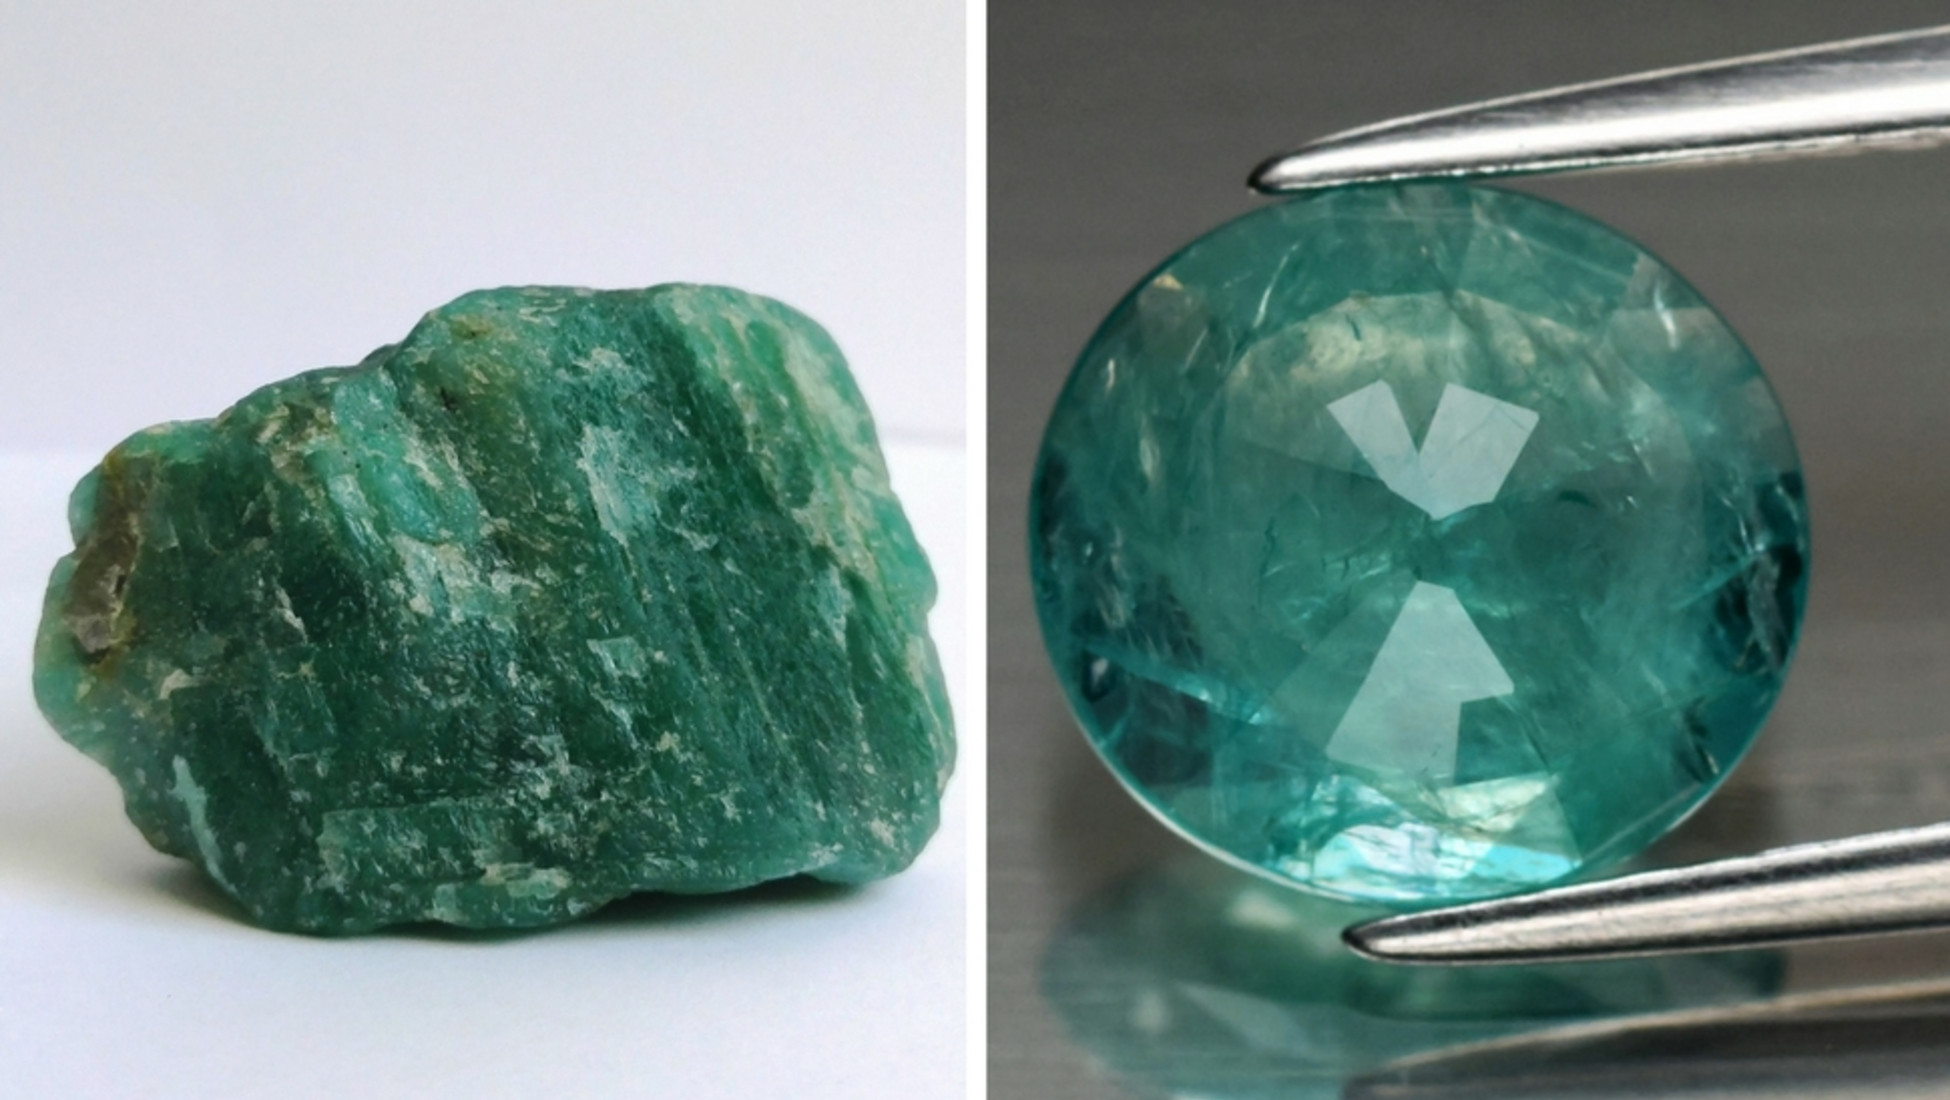 Although still one of the rarest gems in the world, this new discovery has  now made a few, higher-quality stones available. 9a2554badd